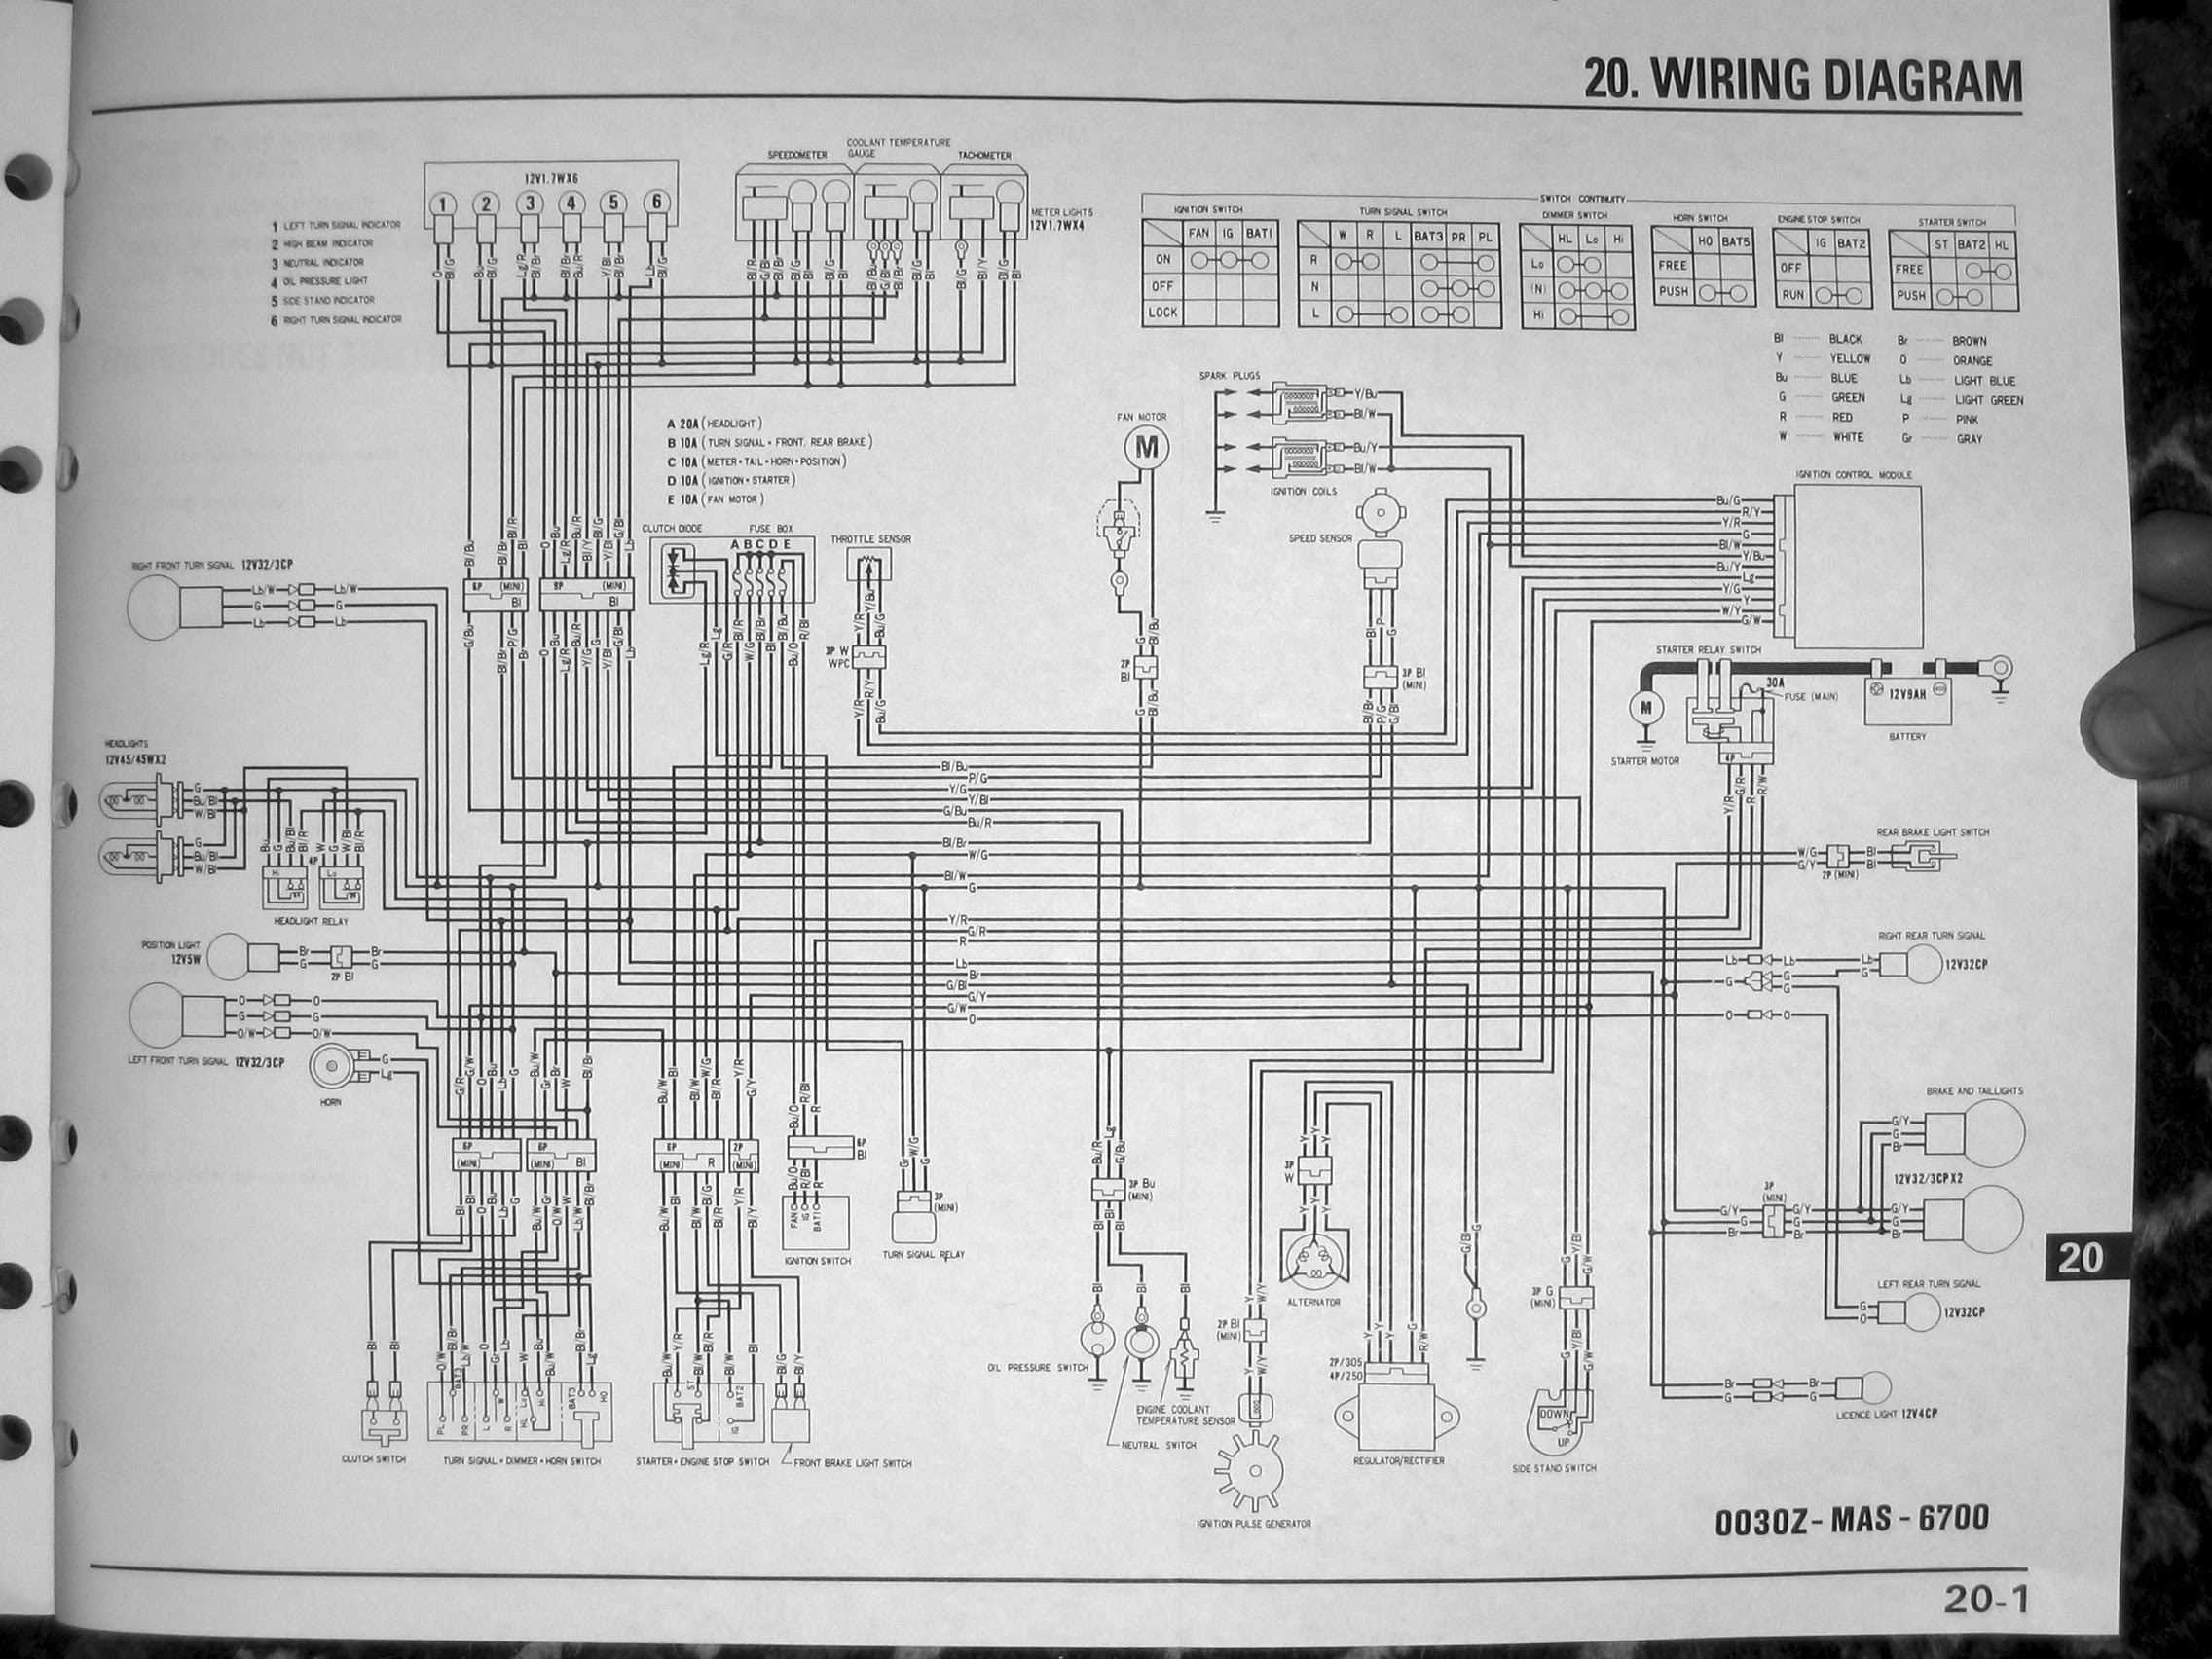 Powermander Gsxr 750 Wire Diagram Full